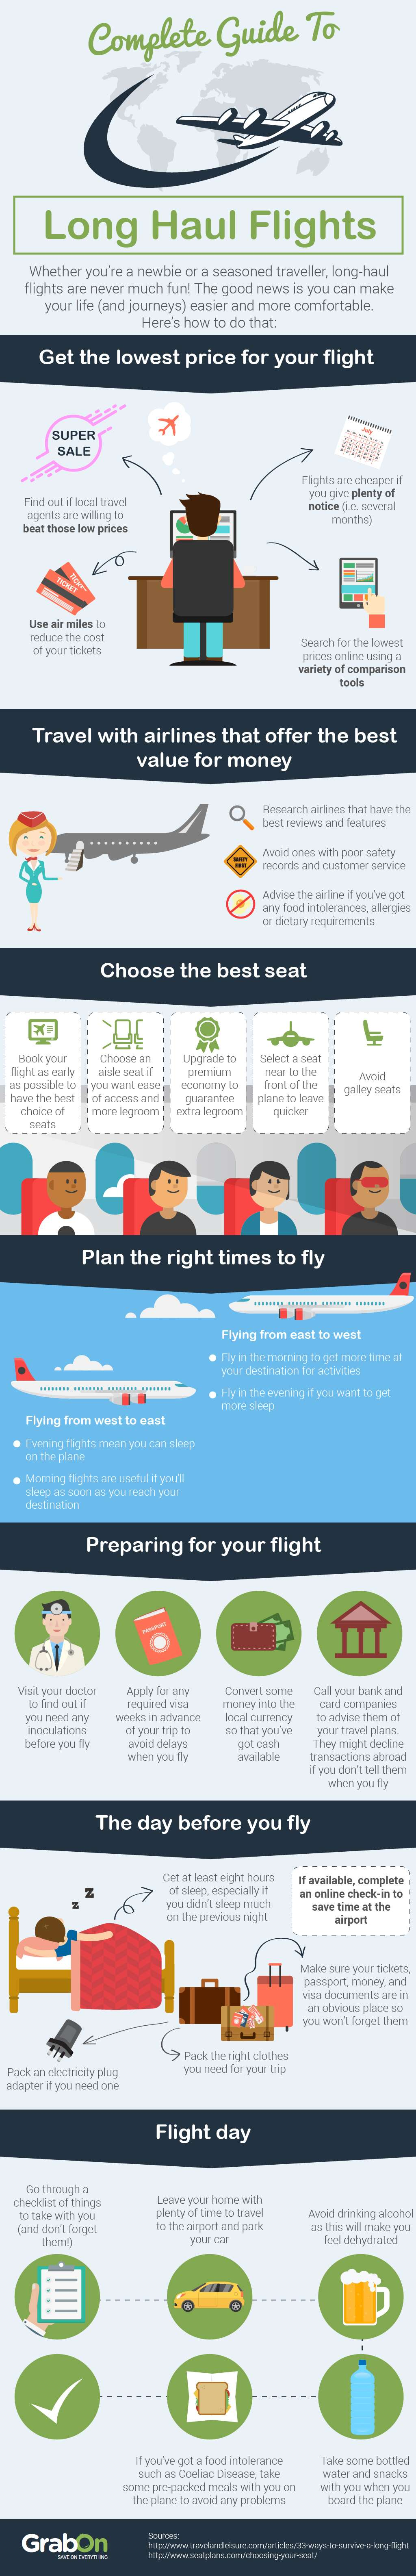 complete-guide-to-long-haul-flights